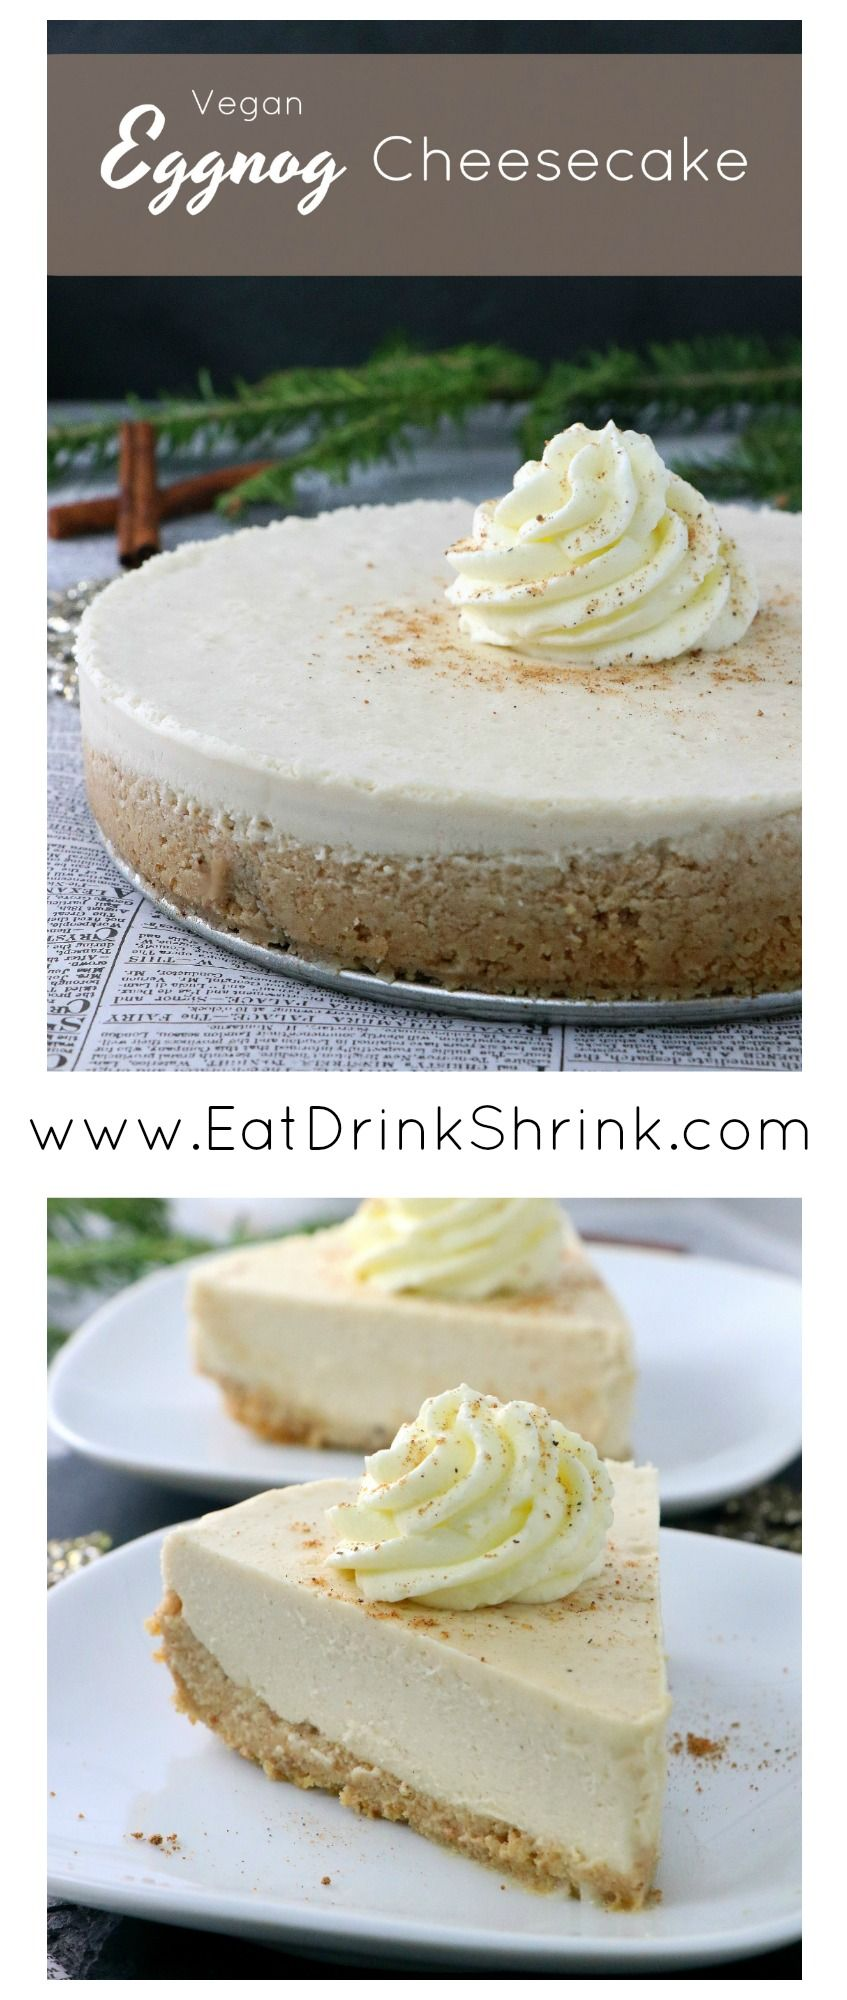 Vegan Eggnog Cheesecake - Eat. Drink. Shrink. #eggnogcheesecake